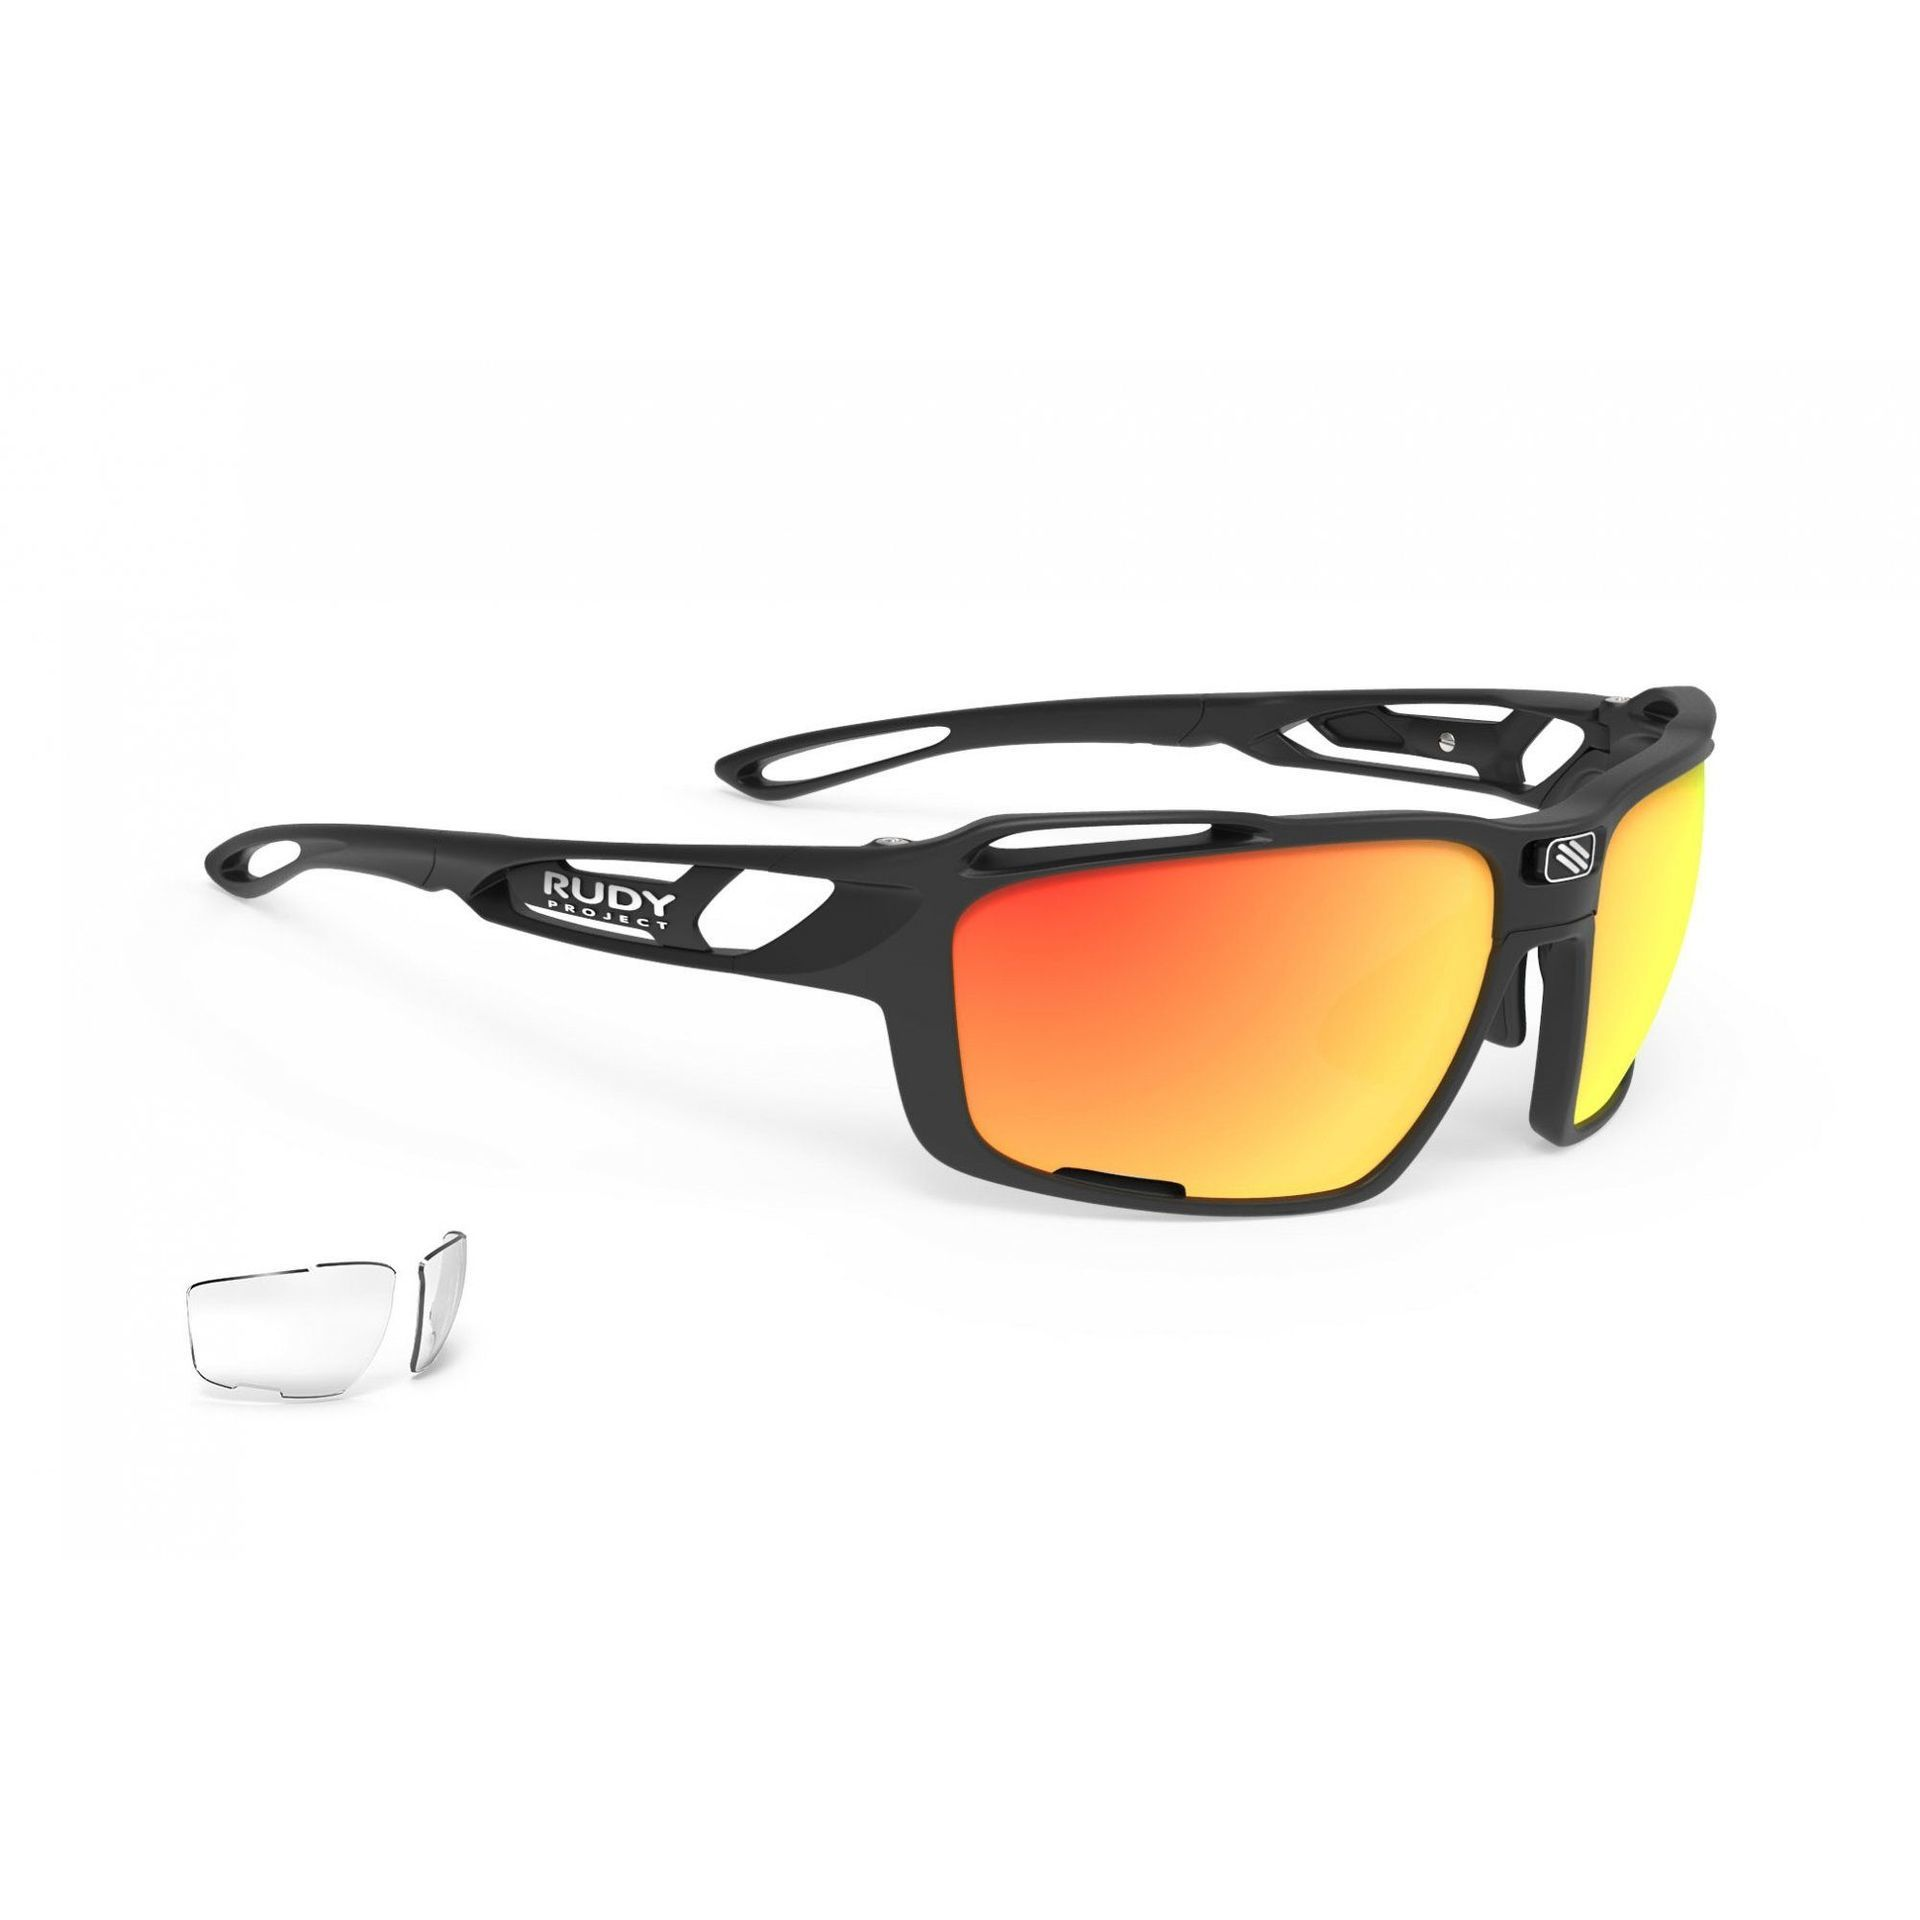 OKULARY RUDY PROJECT SINTRYX BLACK + ML ORANGE|SMOKE|TRANS SP494006 1